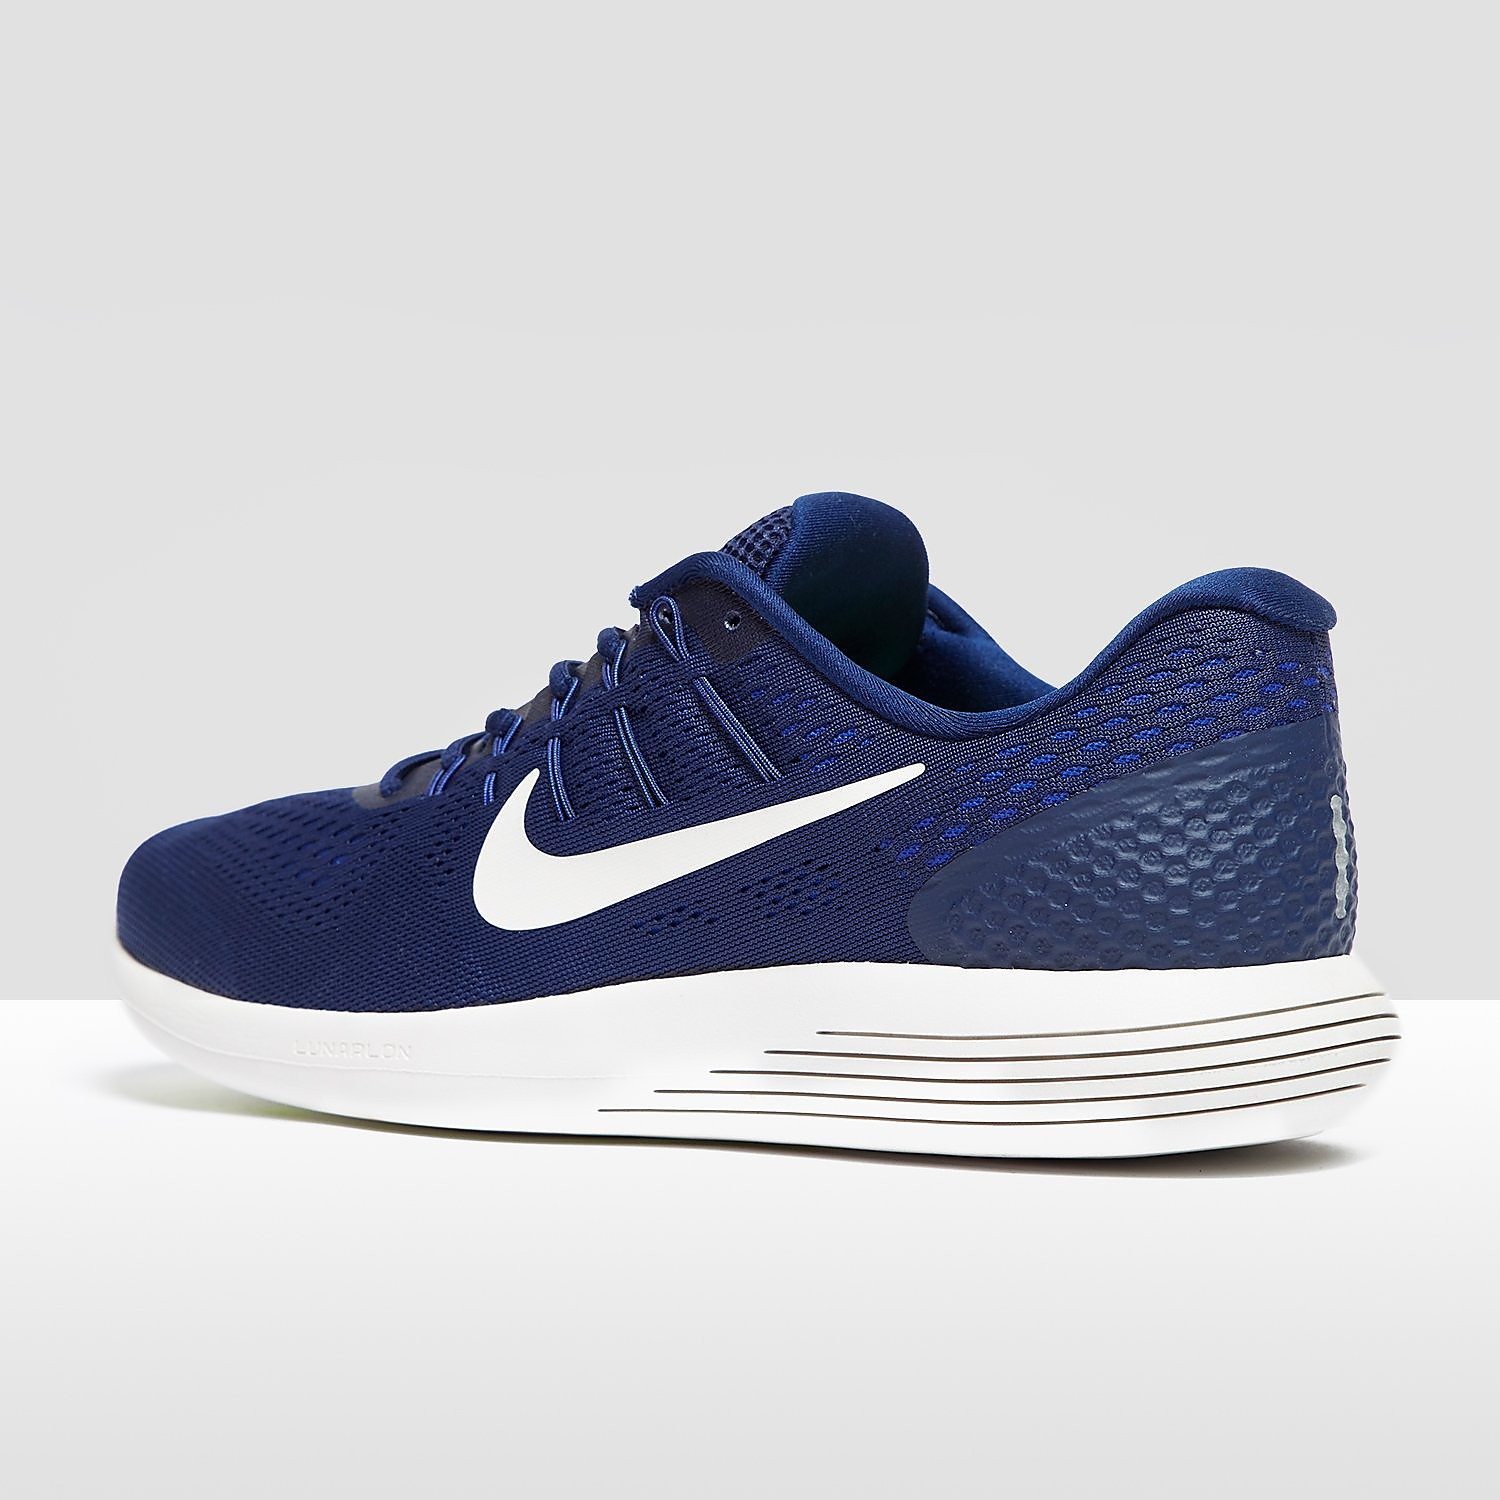 Nike Lunar Glide 8 Men's Running Shoes